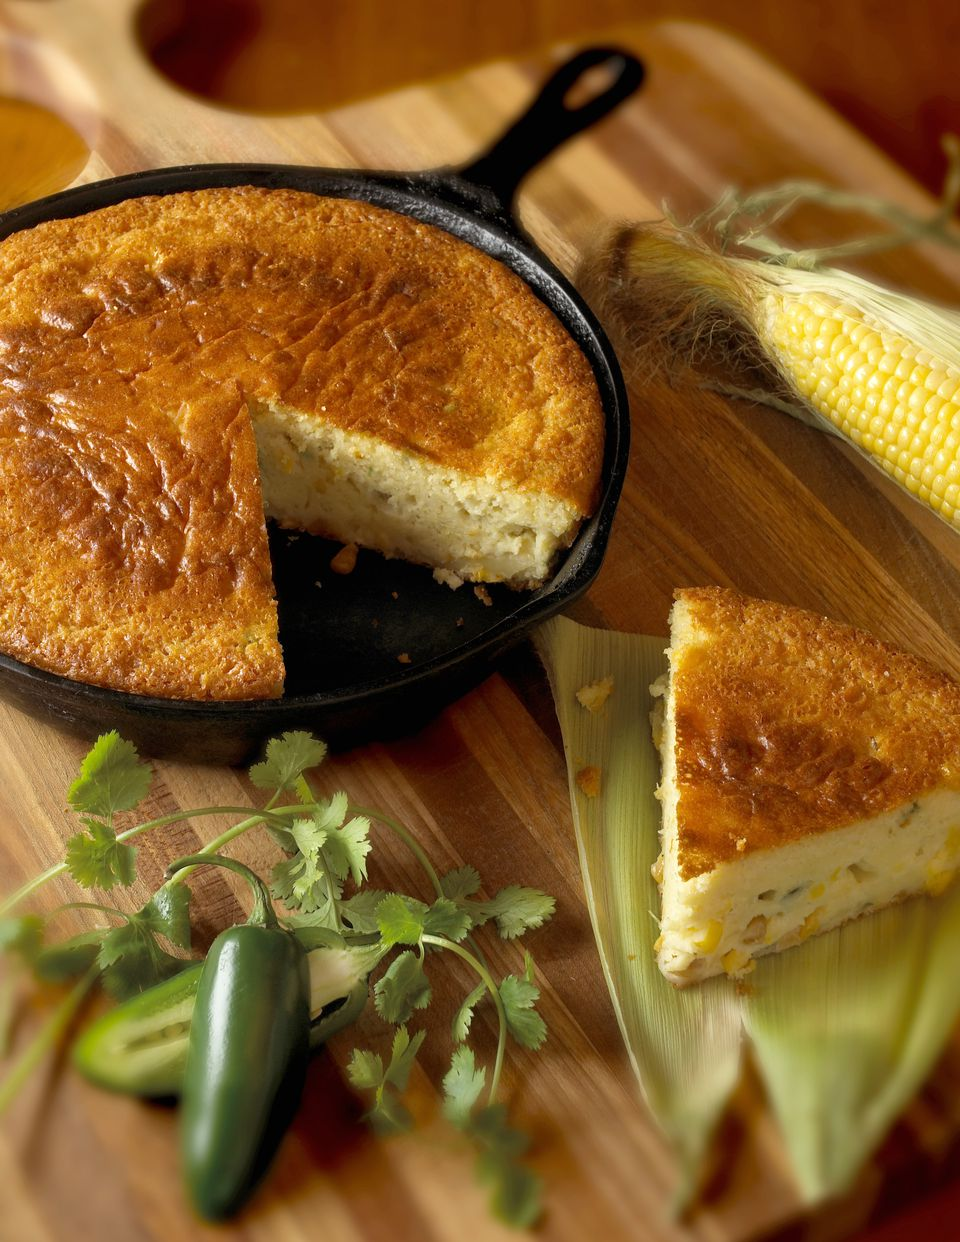 Skillet jalapeno with cornbread